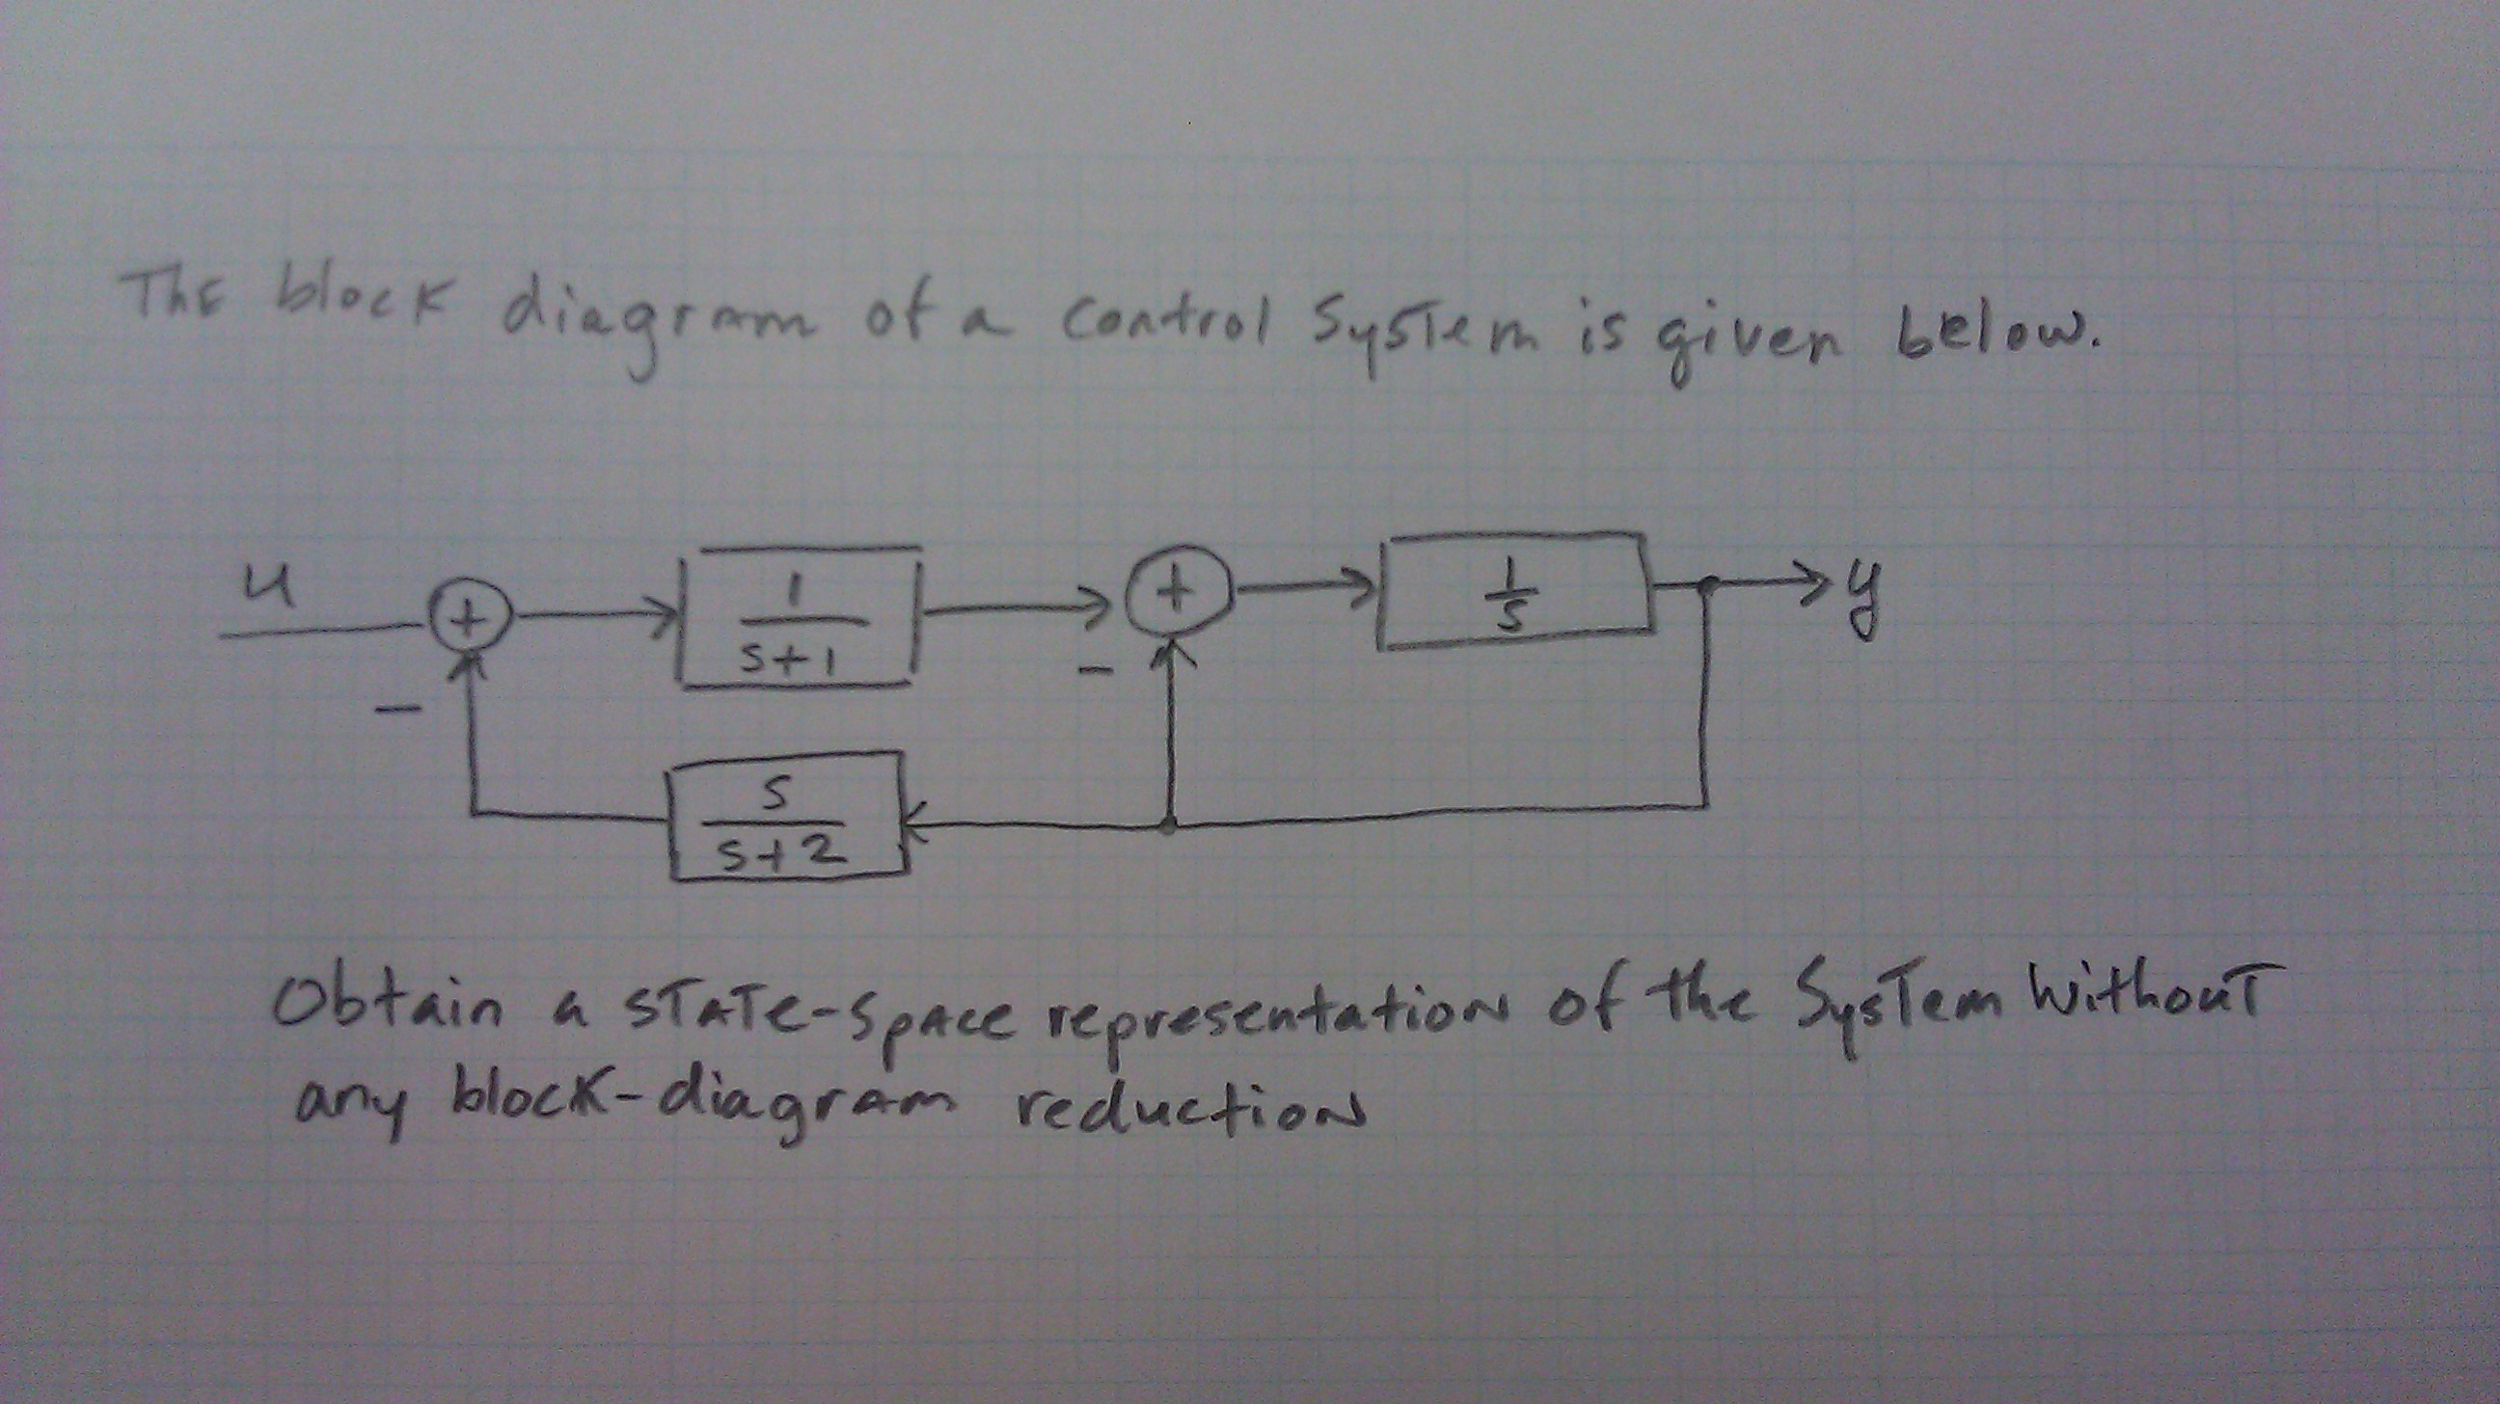 The block diagram of a control system is given bel